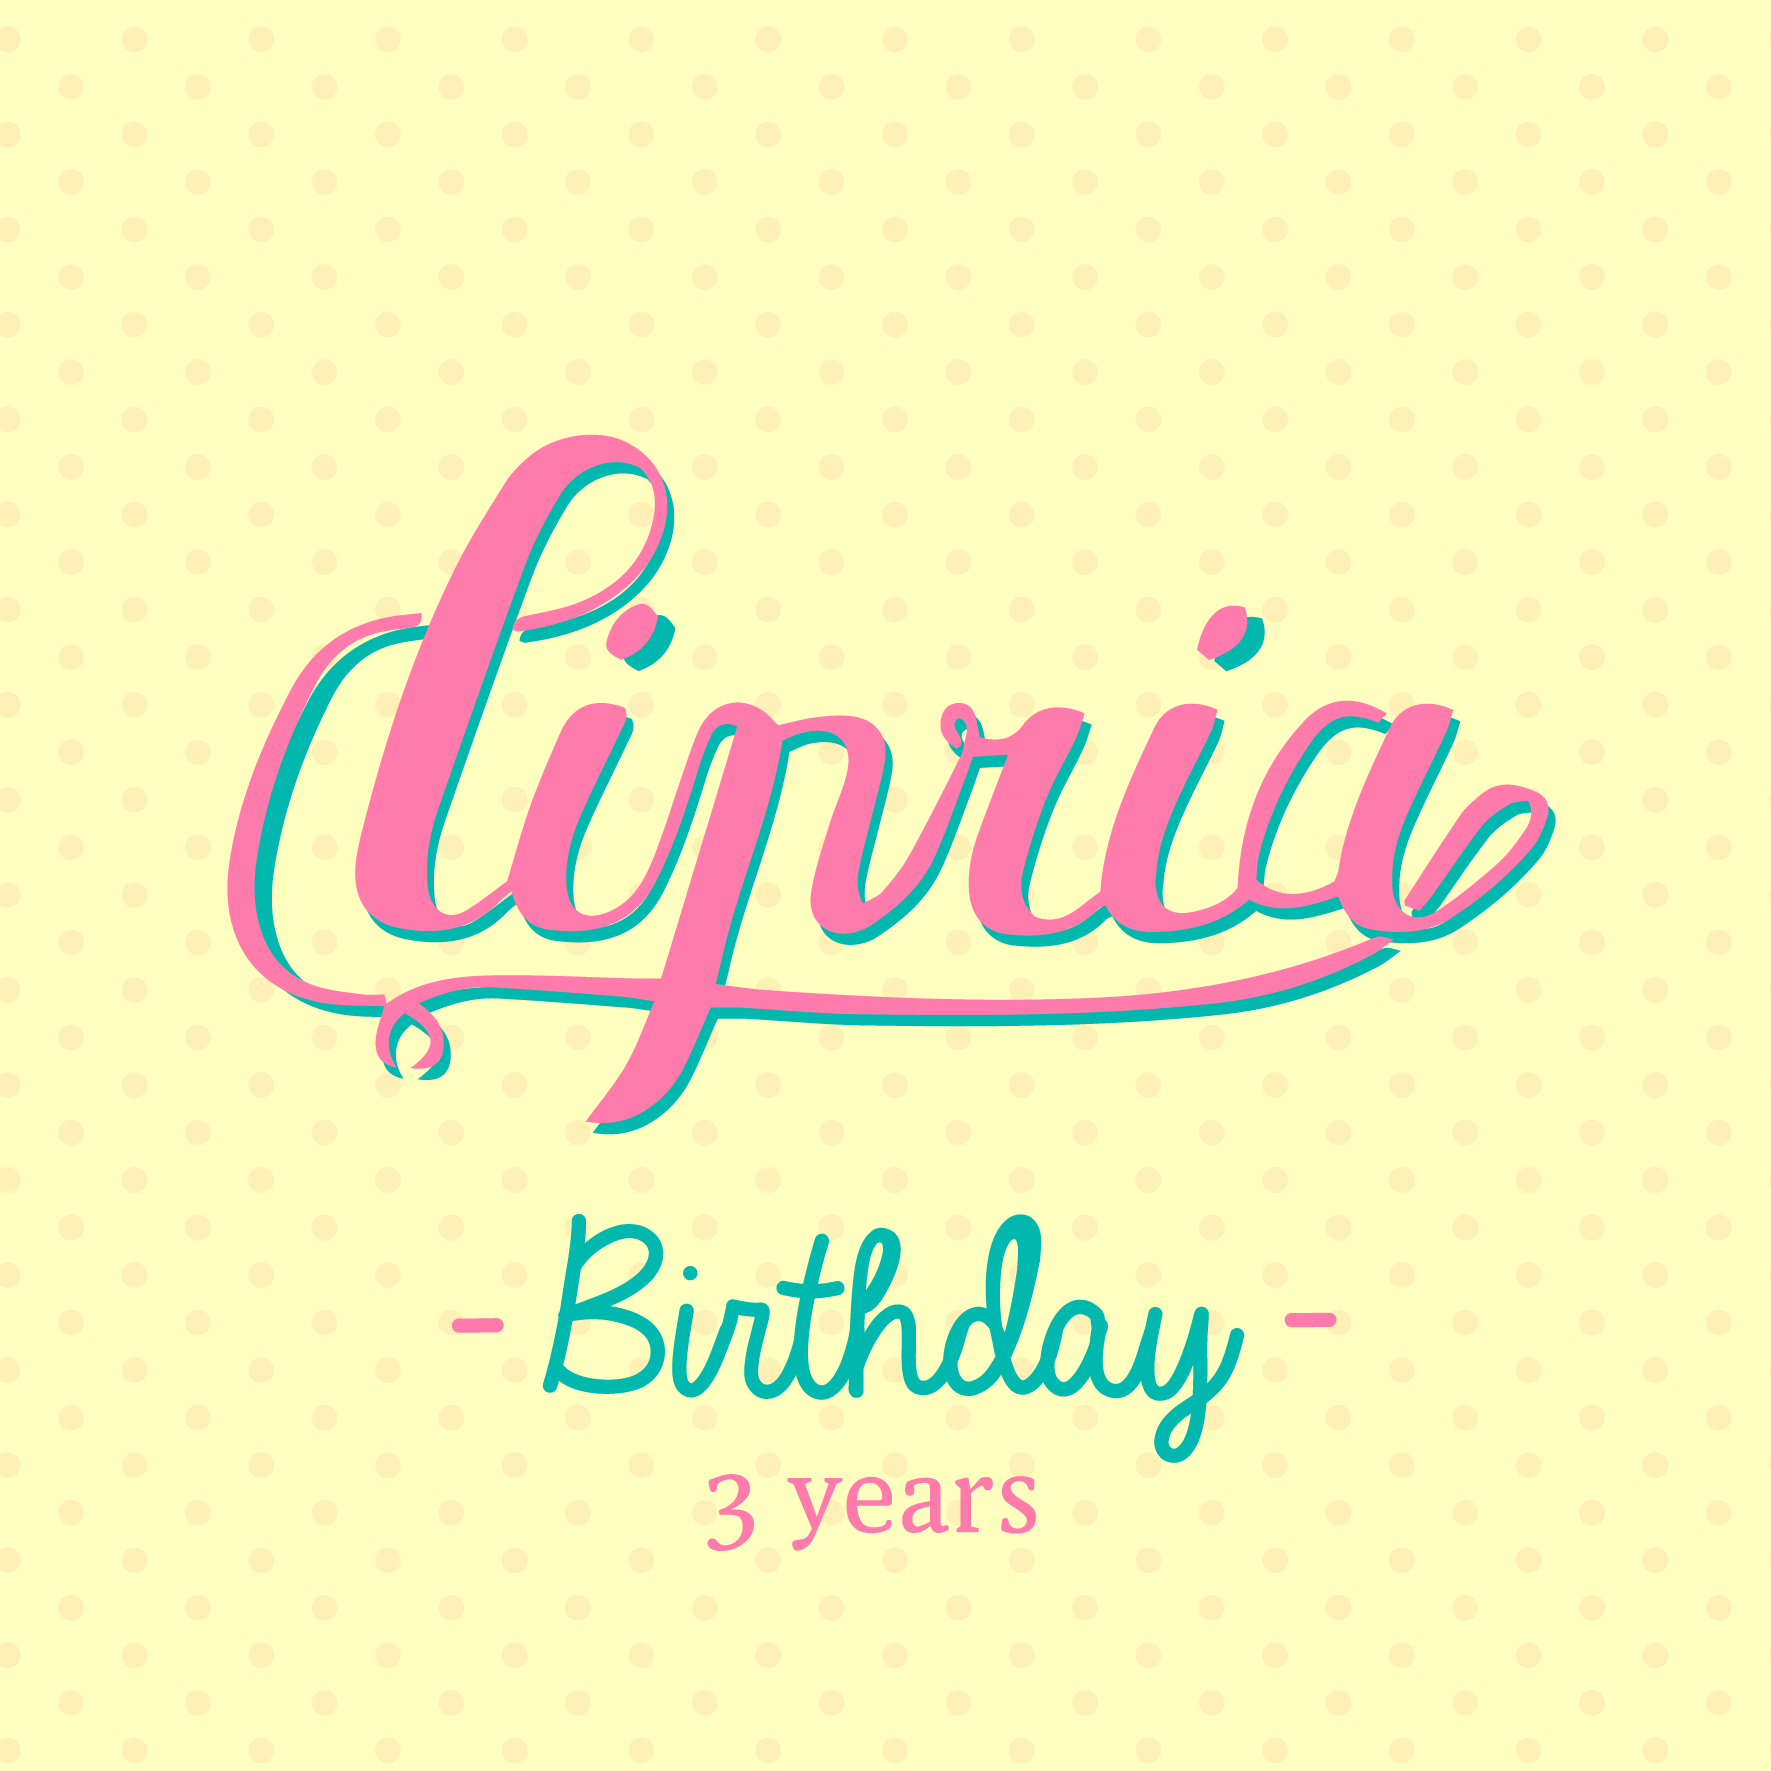 cipria_birthday_profile